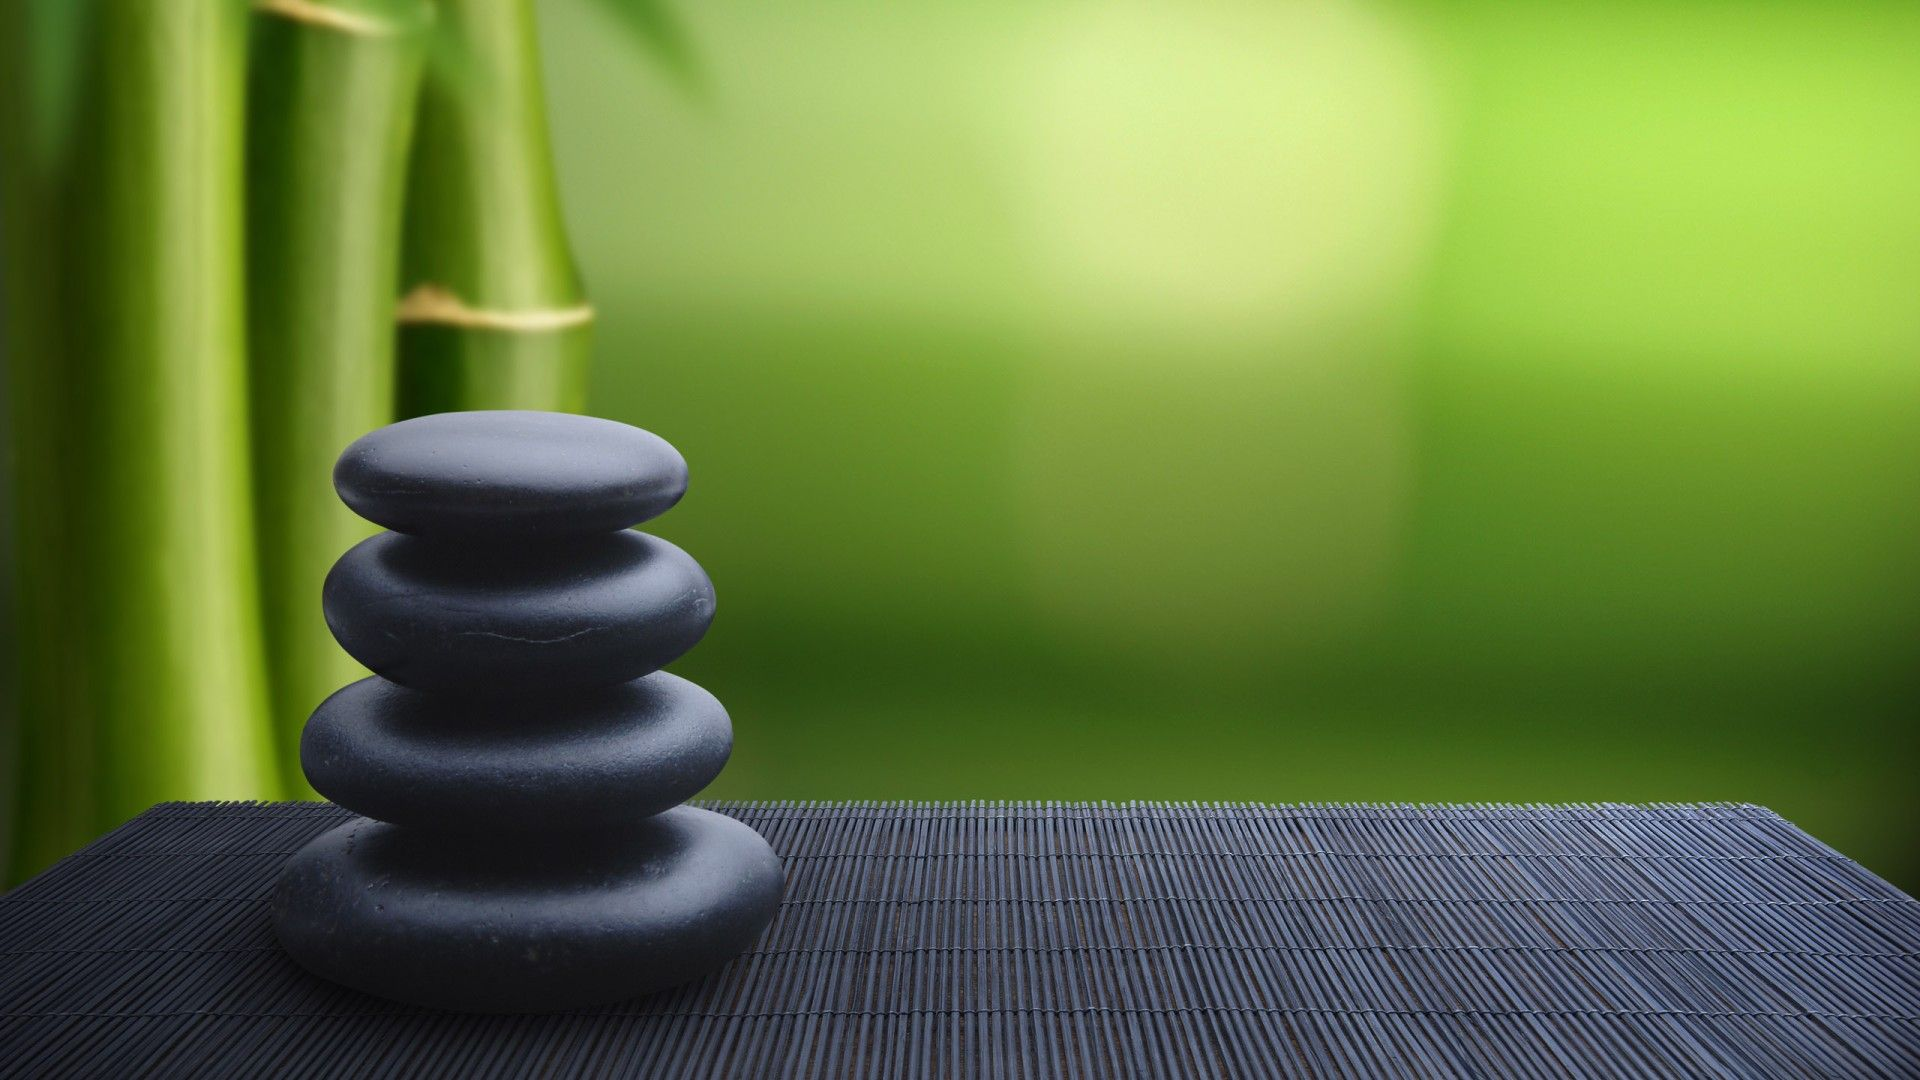 Japan Bamboo Stones Zen 1920X1080 Wallpaper